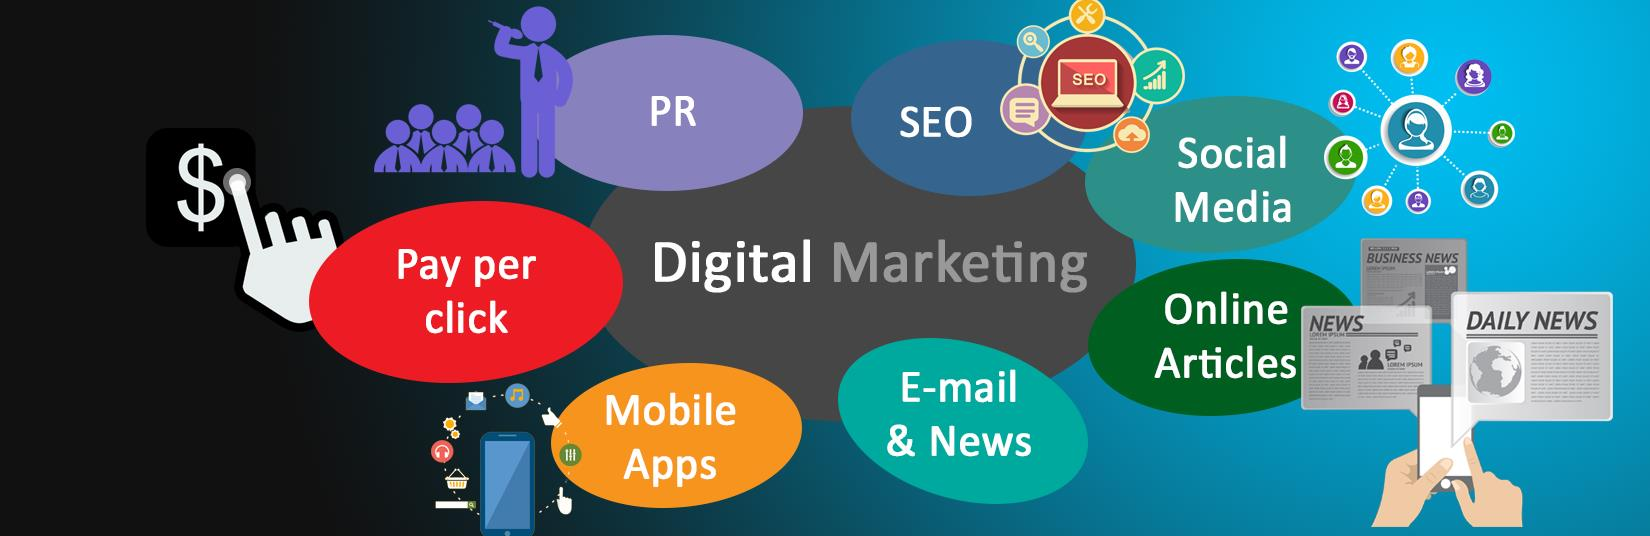 Best digital marketing company in chandigarh Nks50solutions is a digital strategy organization service online in Chandigarh. Nks50solutions focuses on search engine marketing Google Positioning, content marketing & development, website conv - by NKS50Solutions, Chandigarh